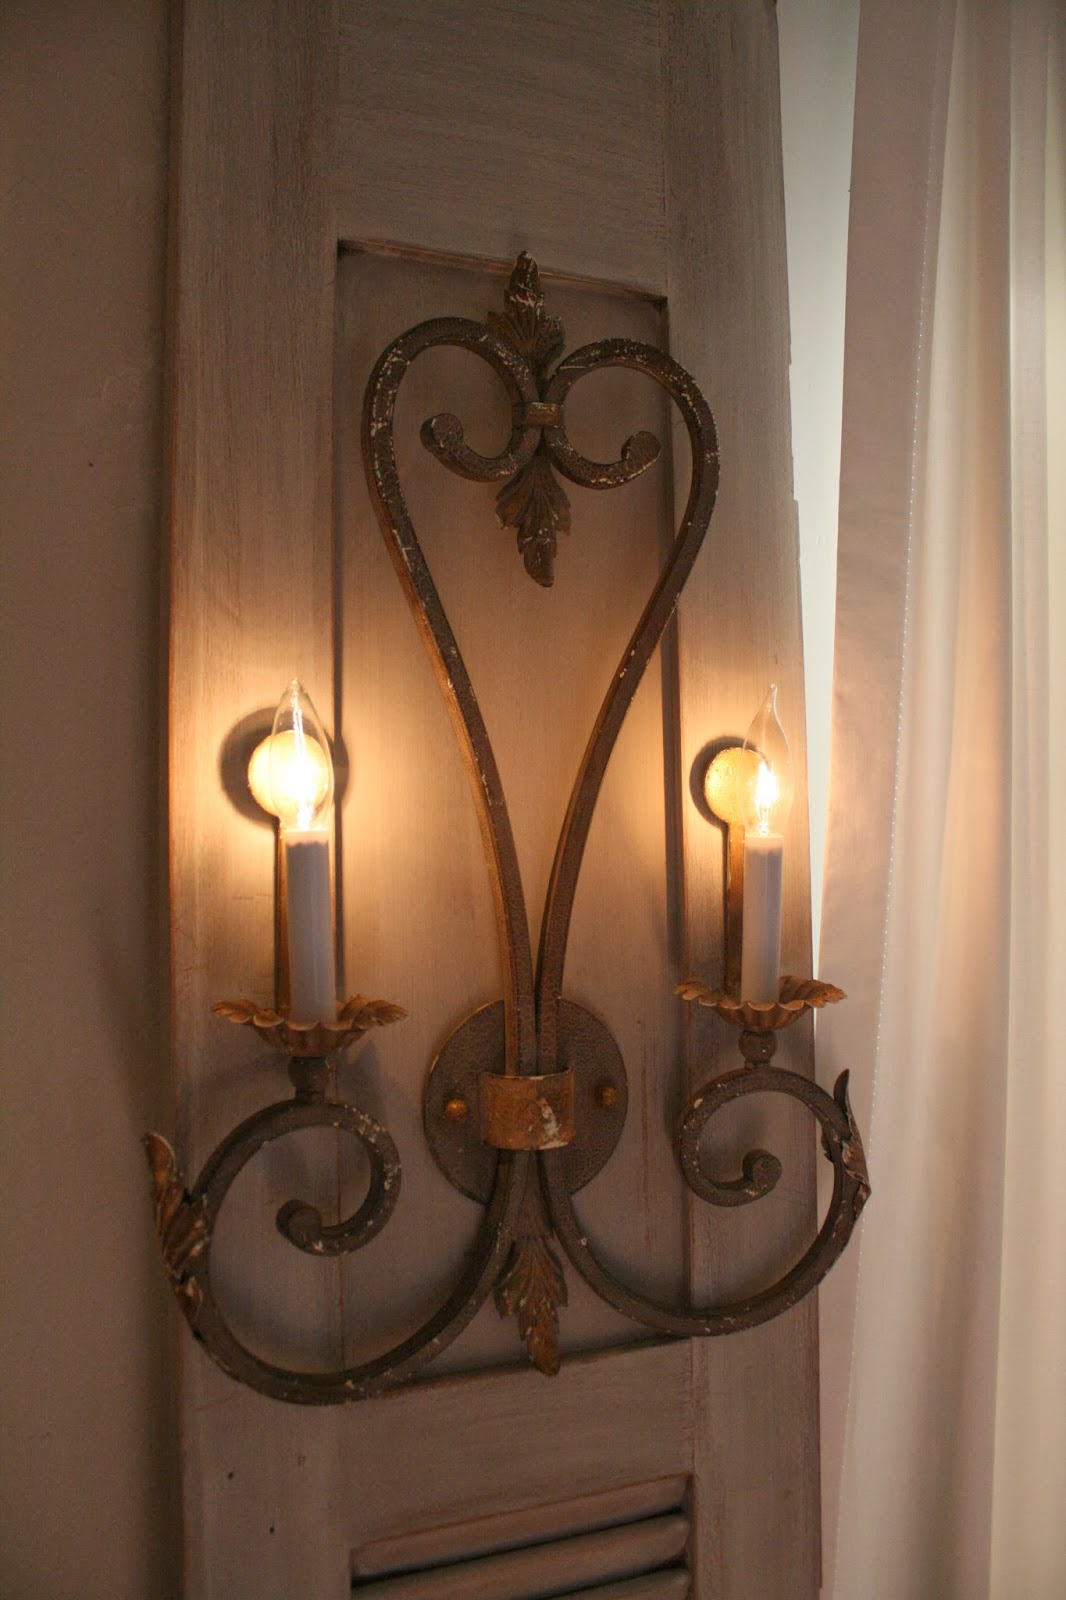 Awesome Wall Sconces on Old Shutter Doors